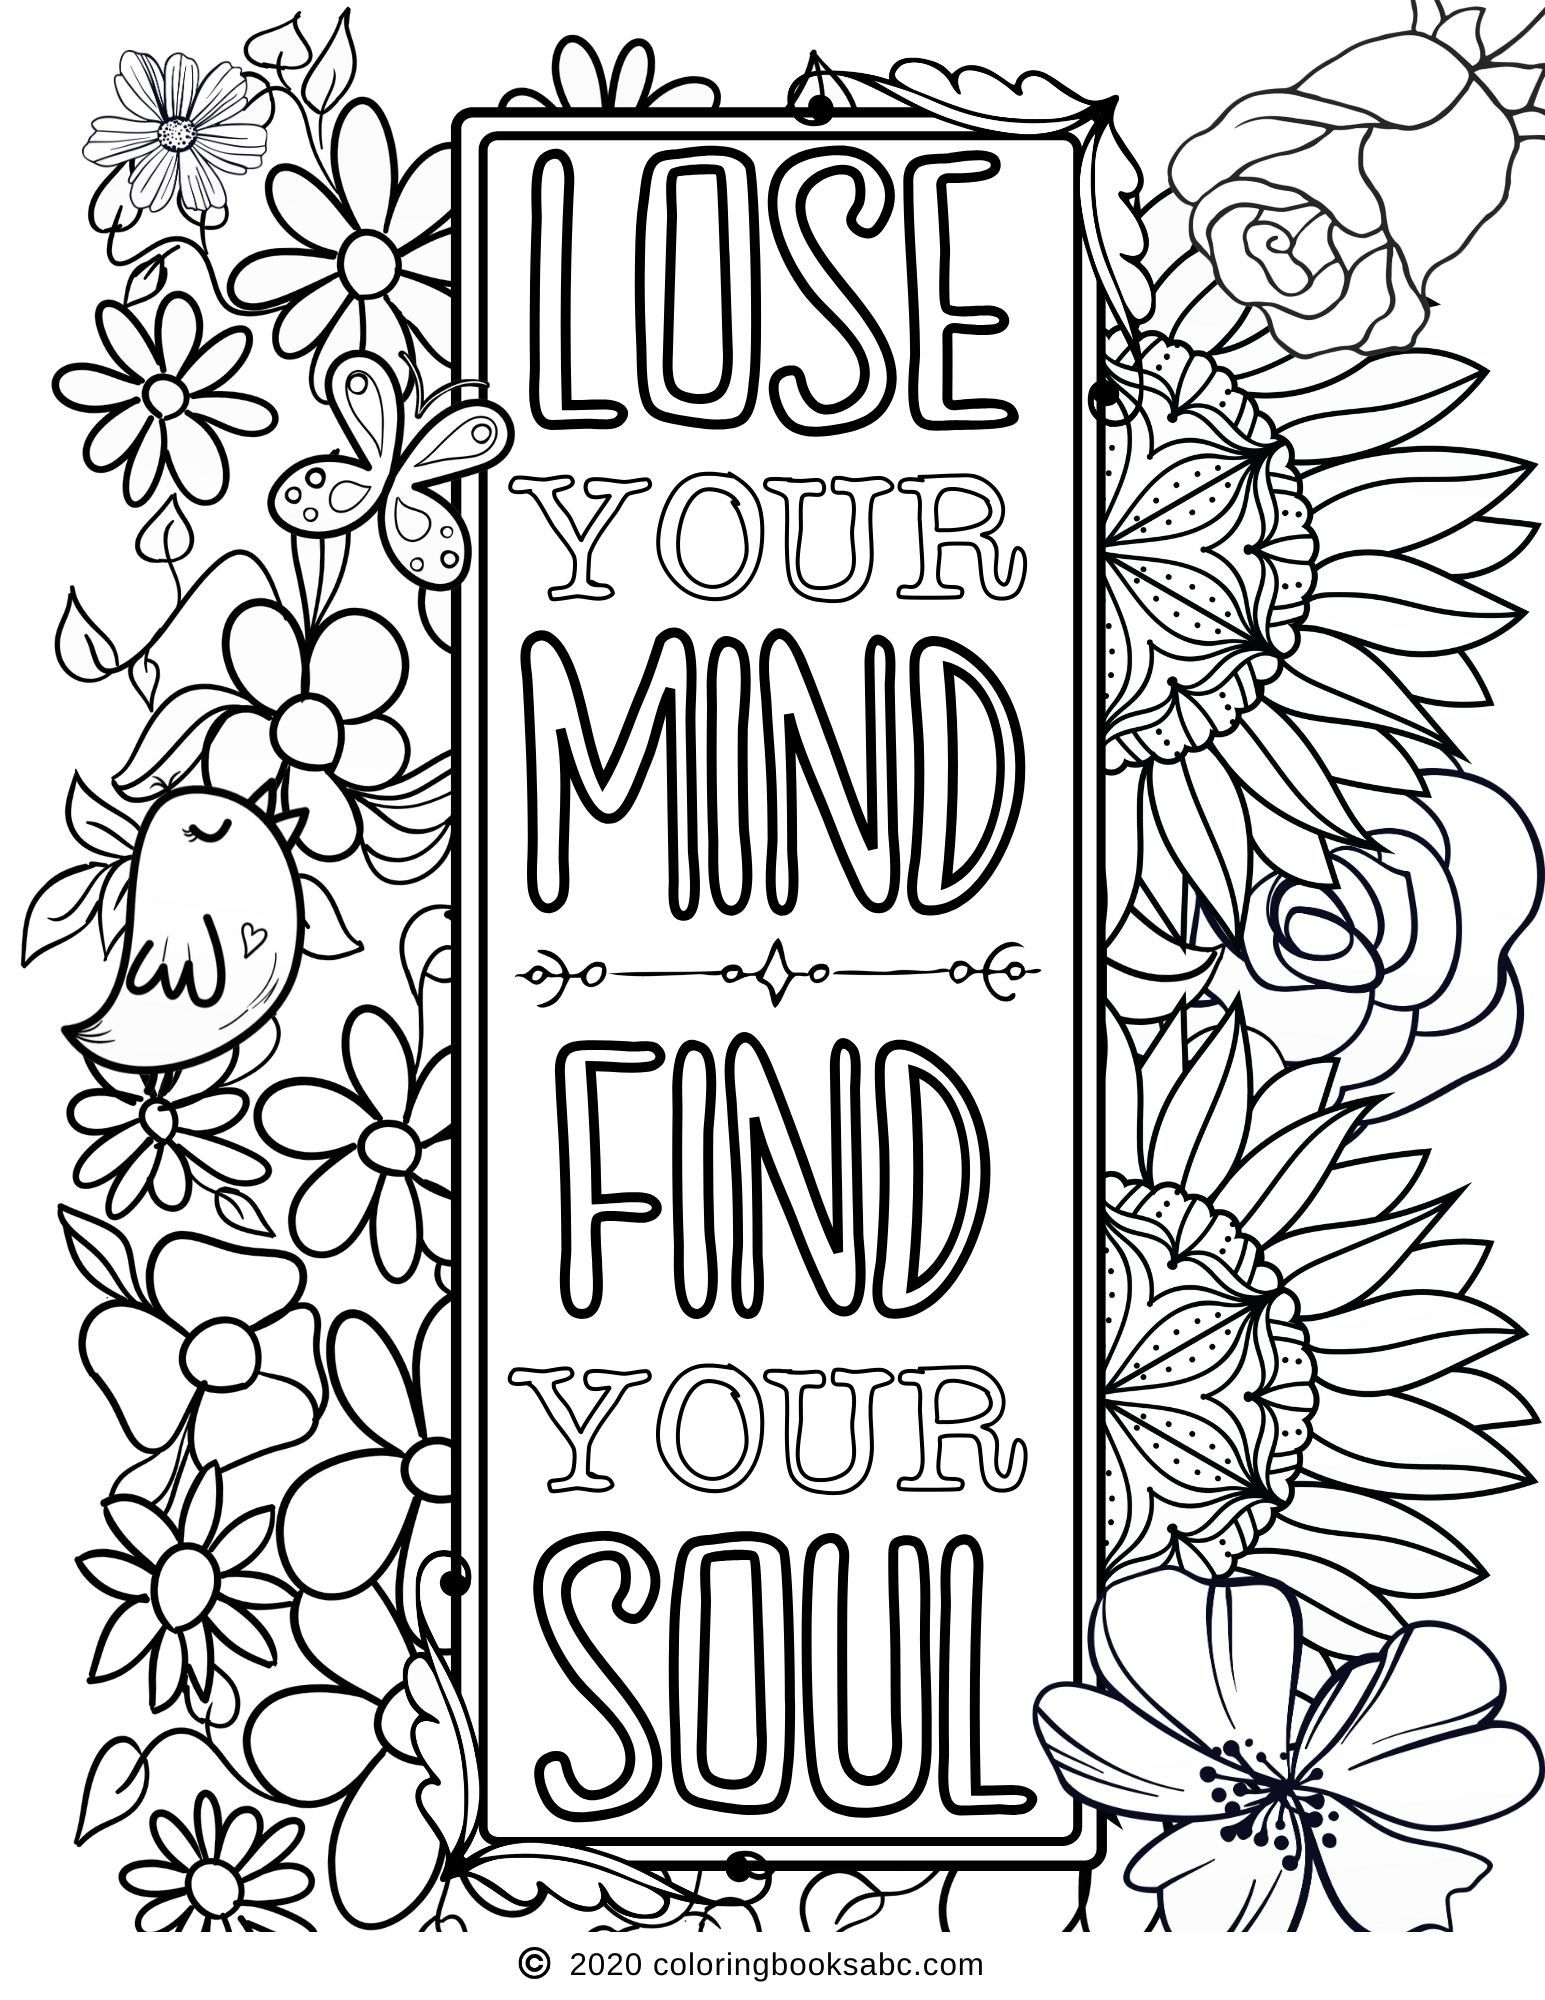 Pin On Adult Coloring Pages Free Printable Inspirational